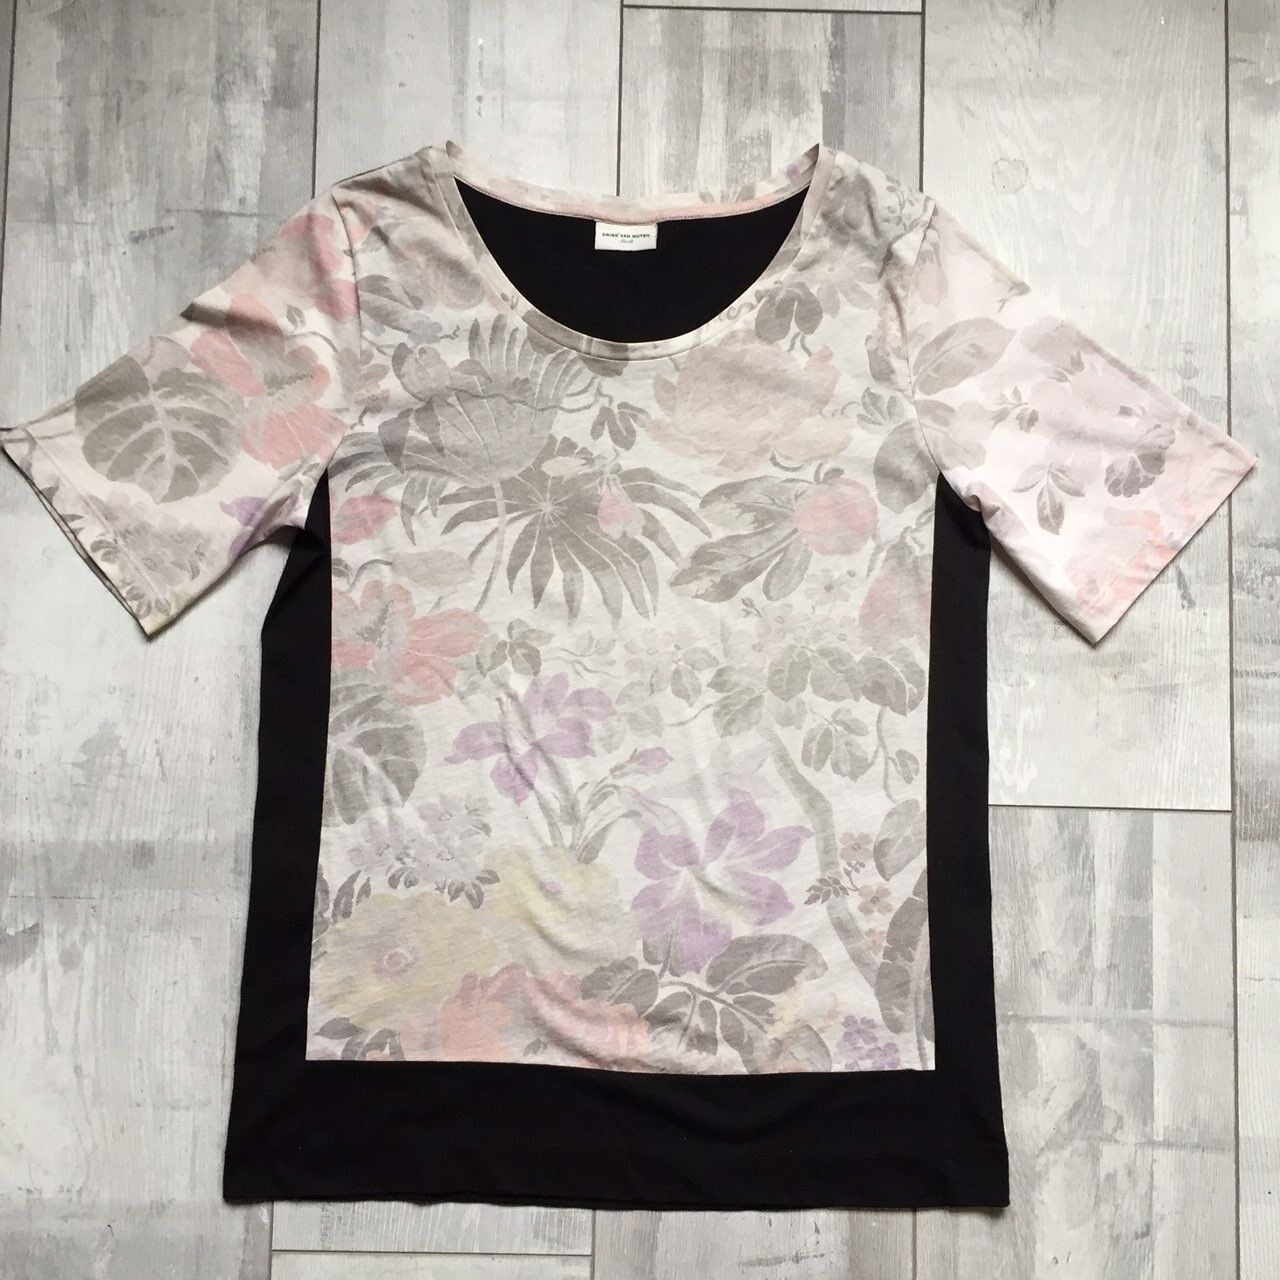 DRIES VAN NOTEN FLORAL BLOUSE T-SHIRT S